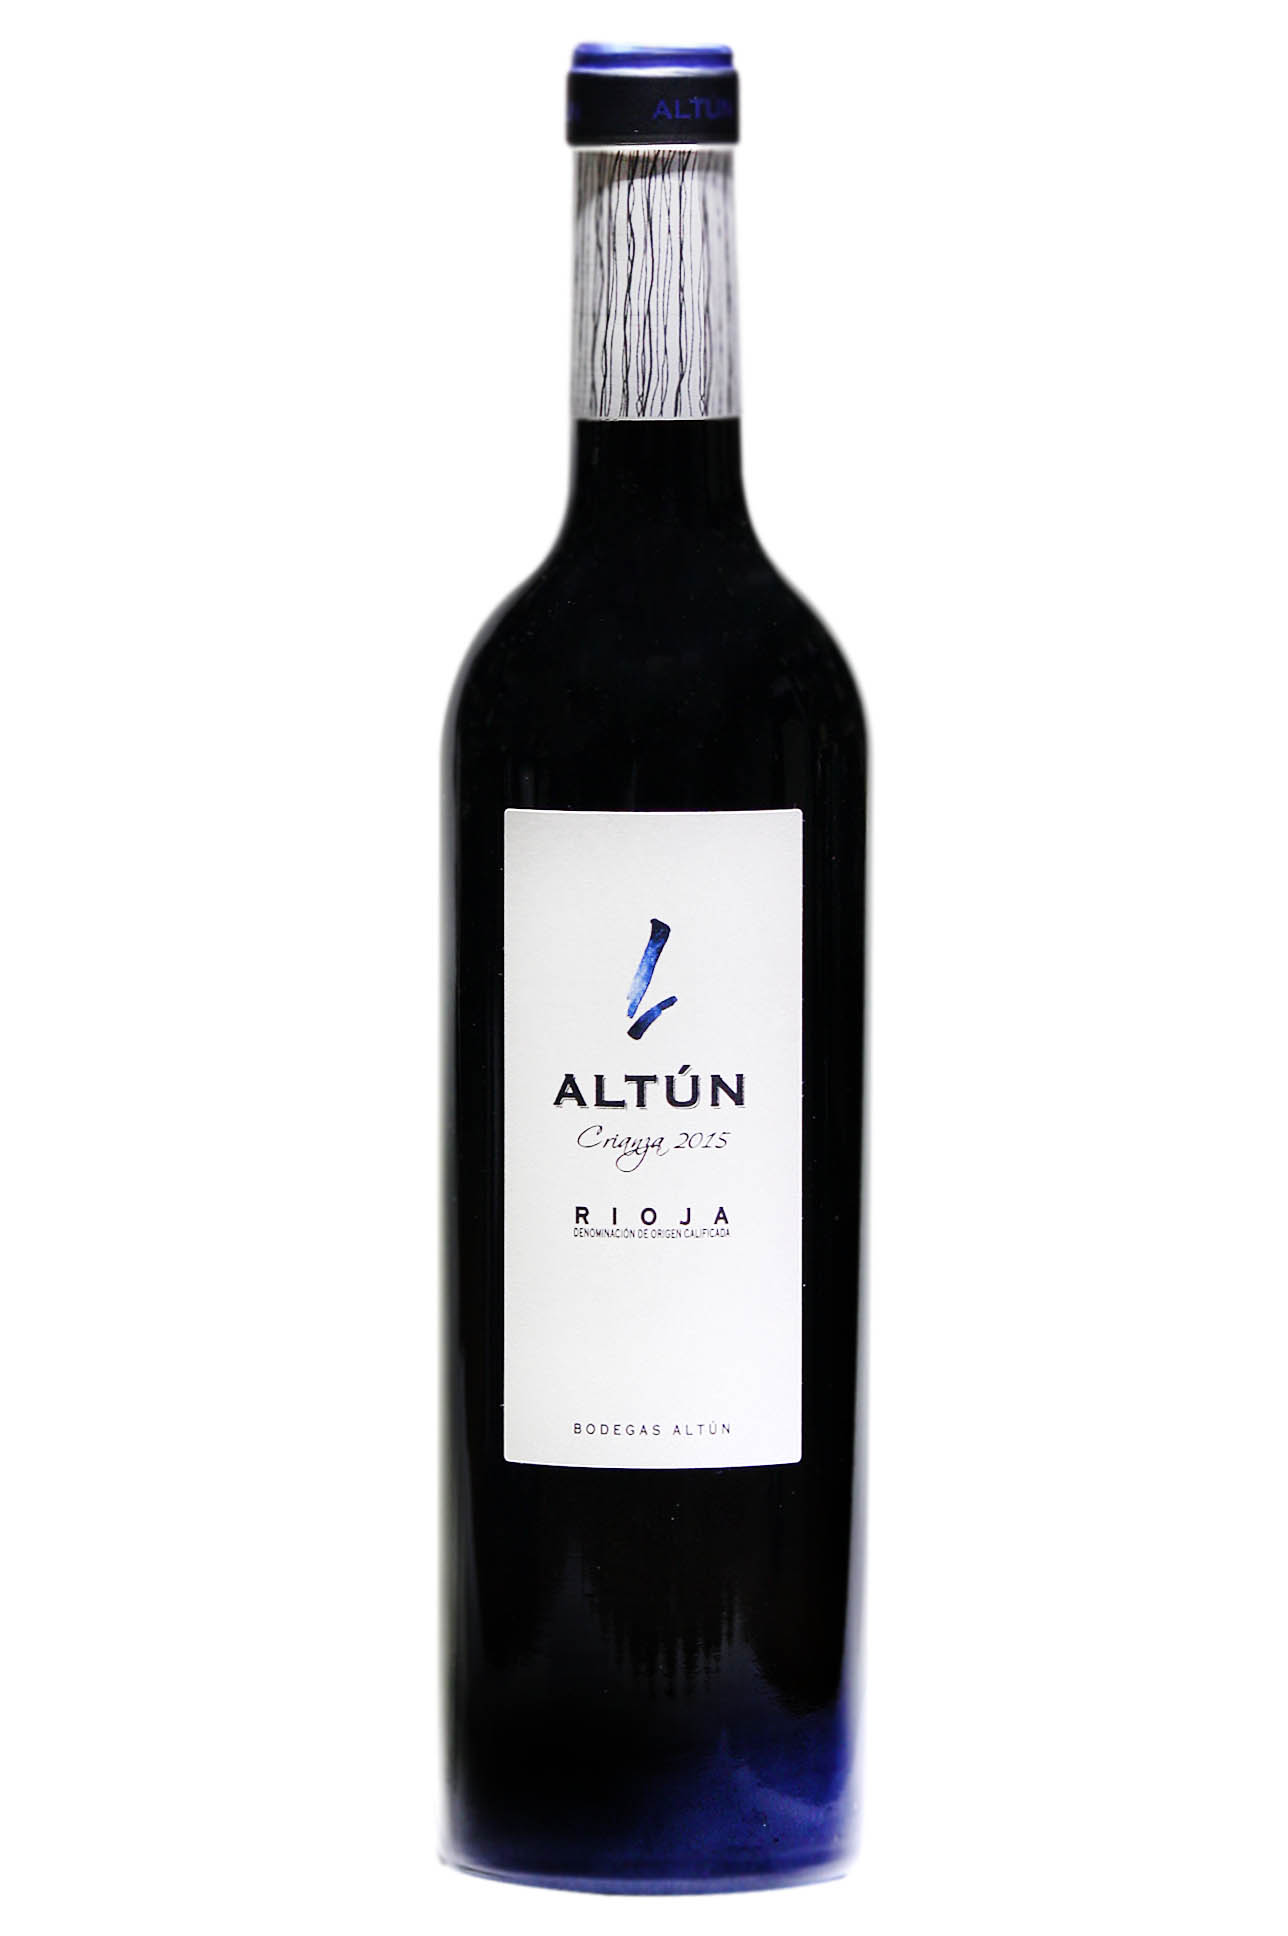 Altun aged red wine